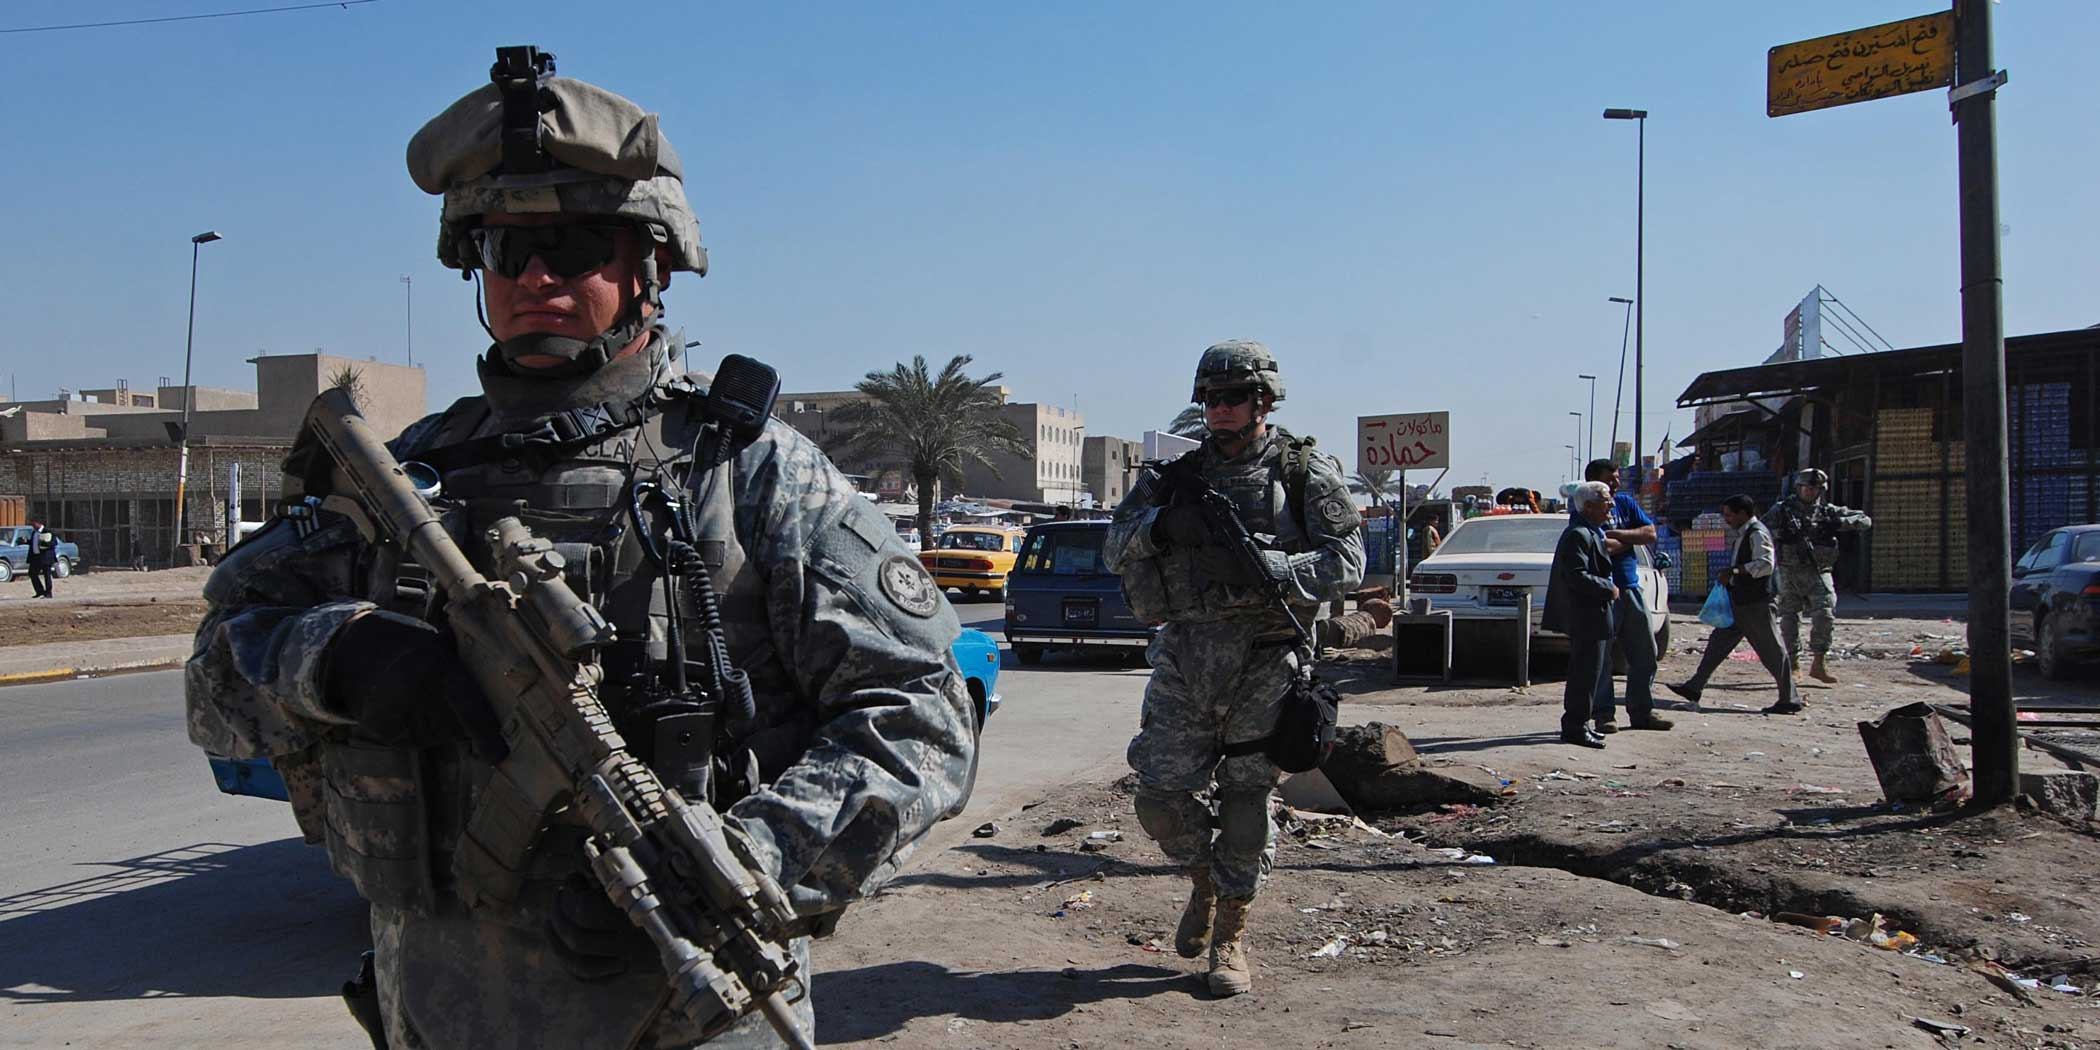 Sgt. 1st Class Timothy Clanin and a platoon sergeant with Headquarters Troop, 1st Squadron, 2nd Stryker Cavalry Regiment, lead their soldiers on a patrol through the Jamila neighborhood of Sadr City in 2008. Photo by Sgt. Michael Pryor, courtesy of the U.S. Army.